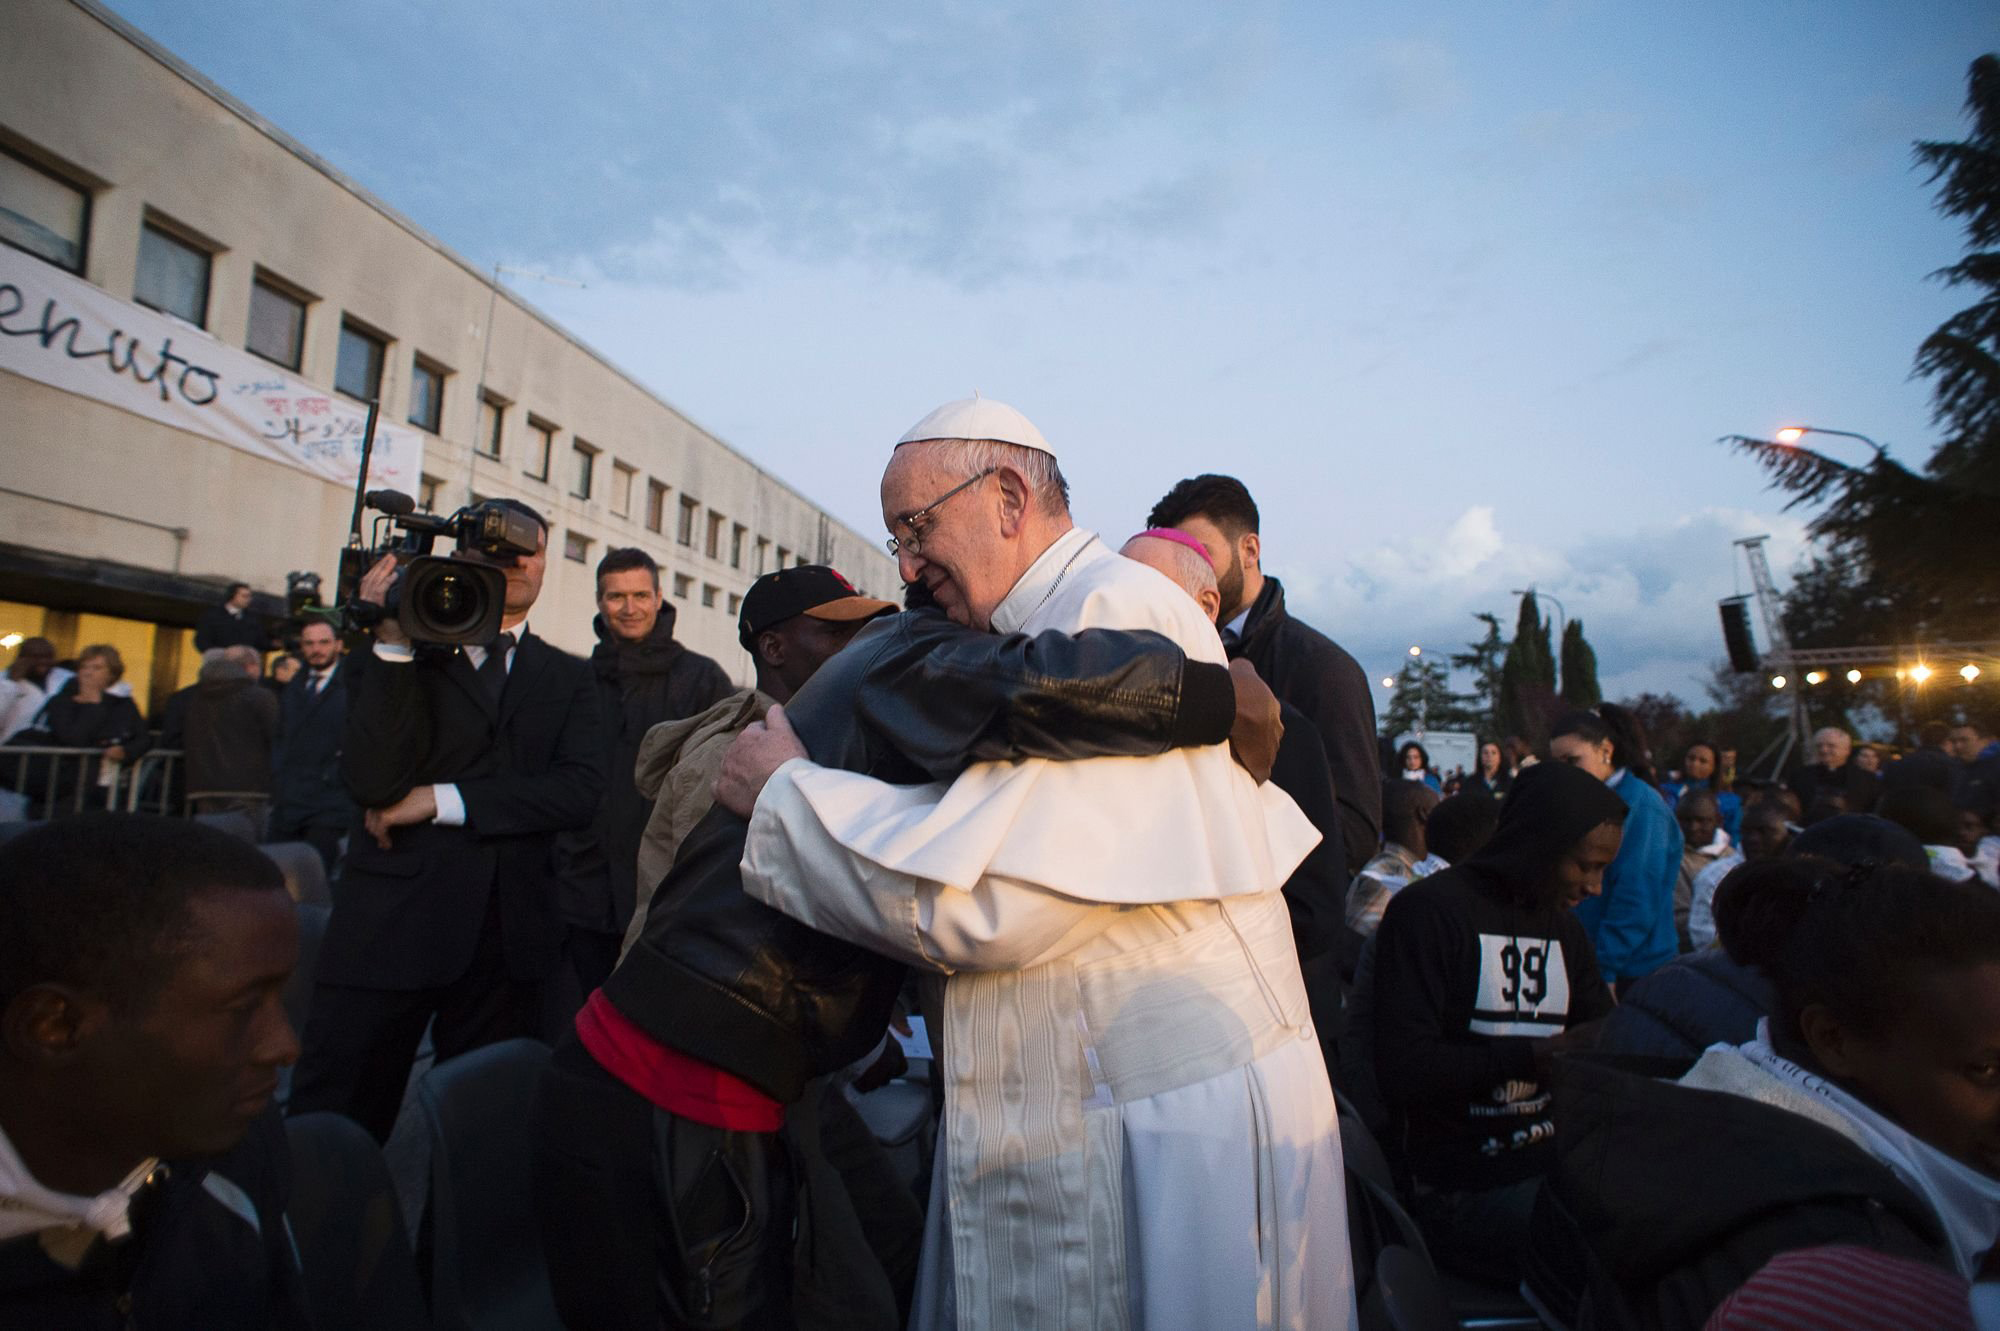 Pope Francis at the Castelnuovo di Porto refugees center near Rome, Italy on March 24, 2016.